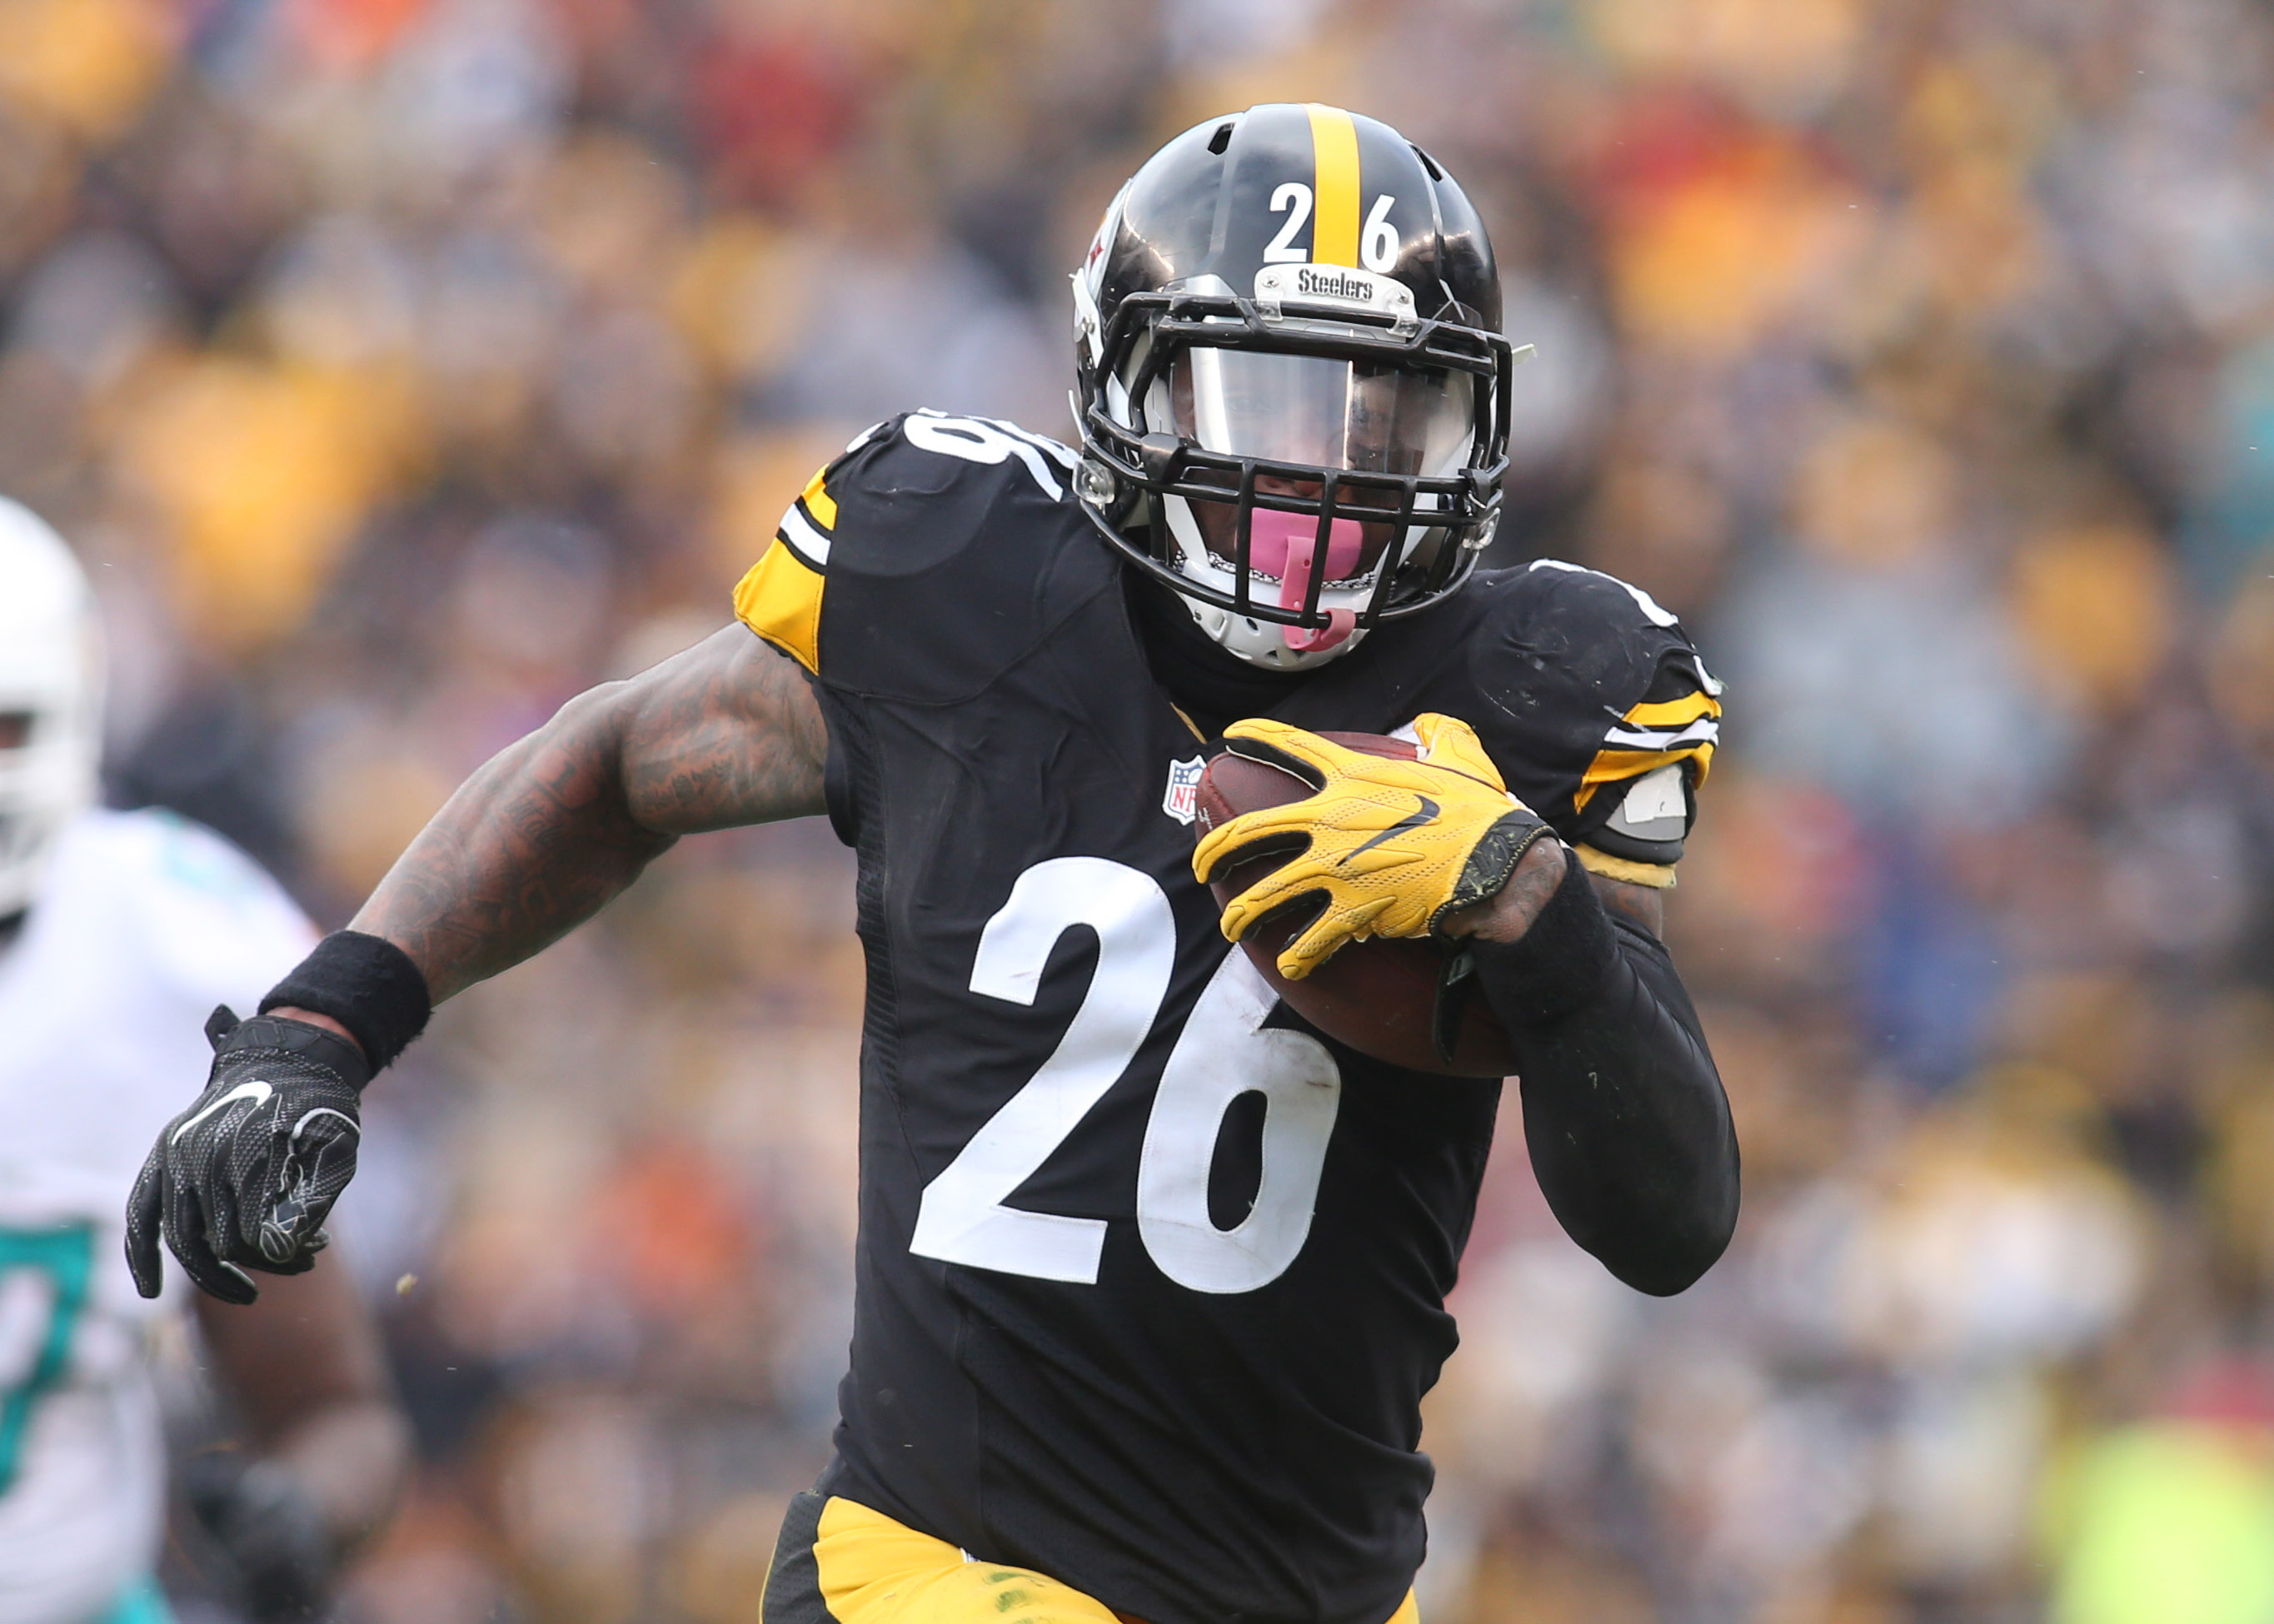 Le Veon Bell ends holdout and rejoins Steelers SBNation